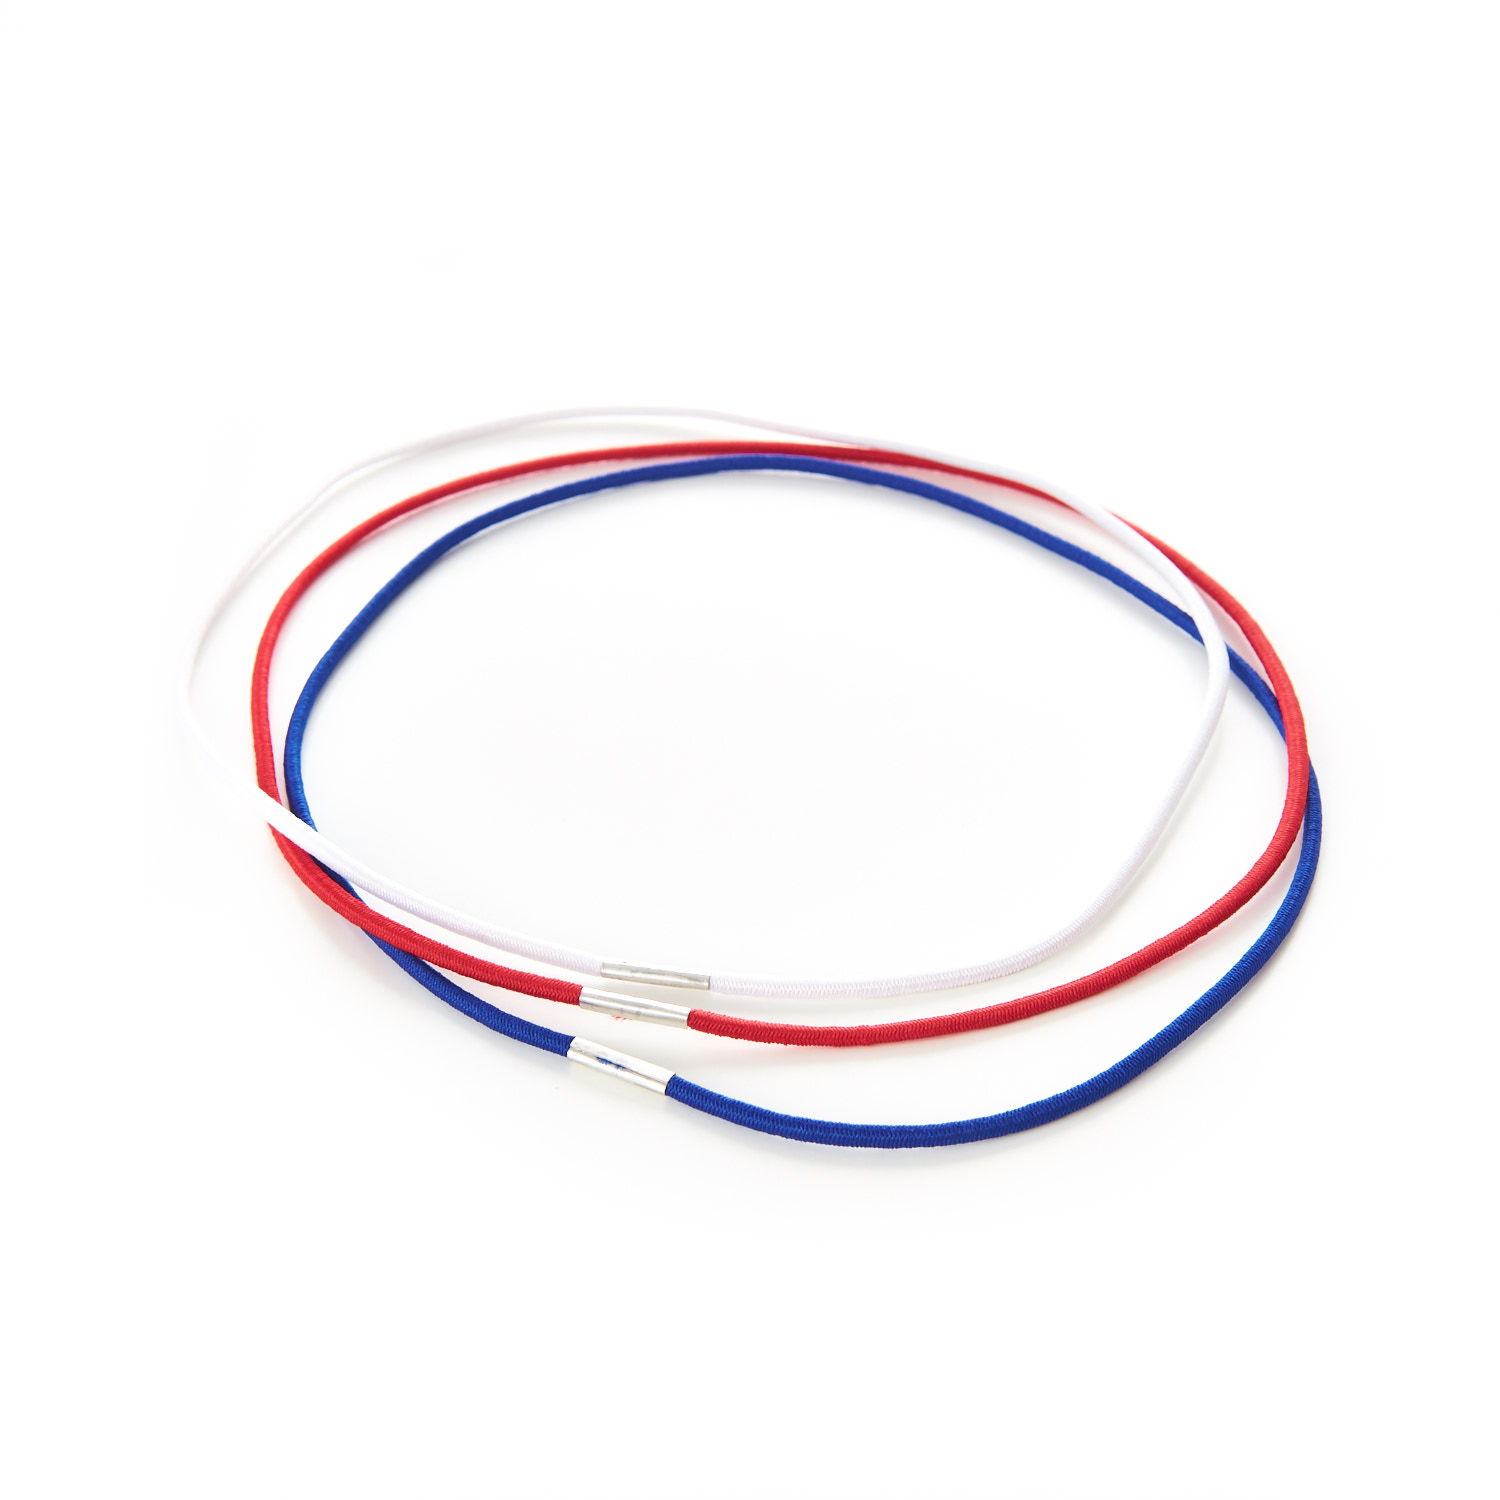 Round Menu Loops Red Blue White Metal Tag Clamped Thin Elastic